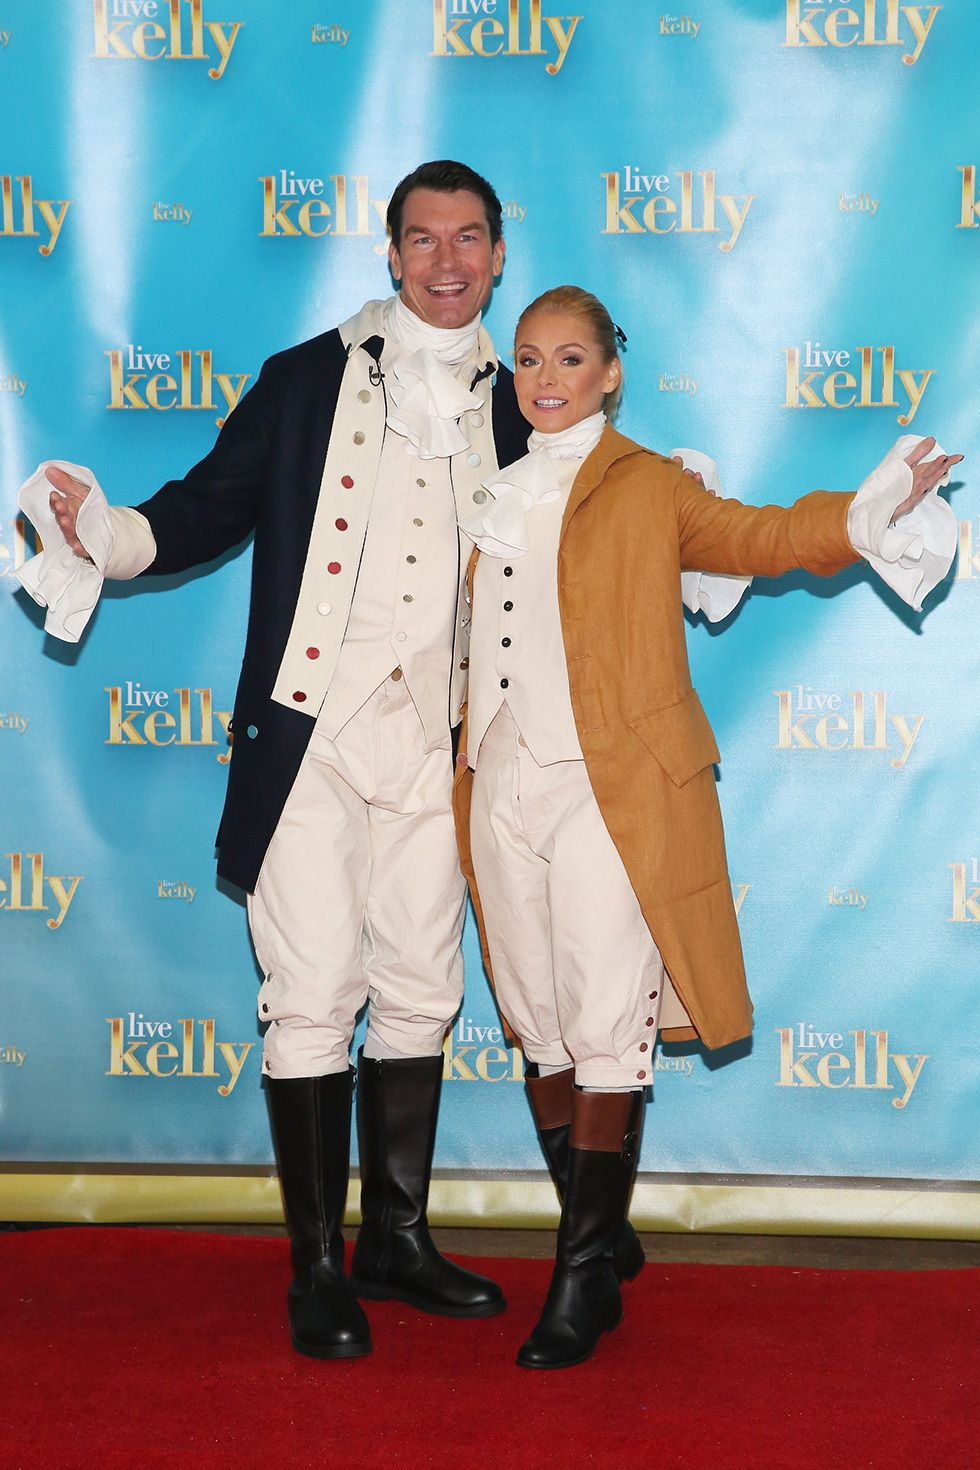 Jerry O'Connell and Kelly Ripa - Founding Fathers Live With Kelly & Michael guest co-host Jerry O'Connell and television host Kelly Ripa dressed up as founding fathers in 2016. Sooo old-school.